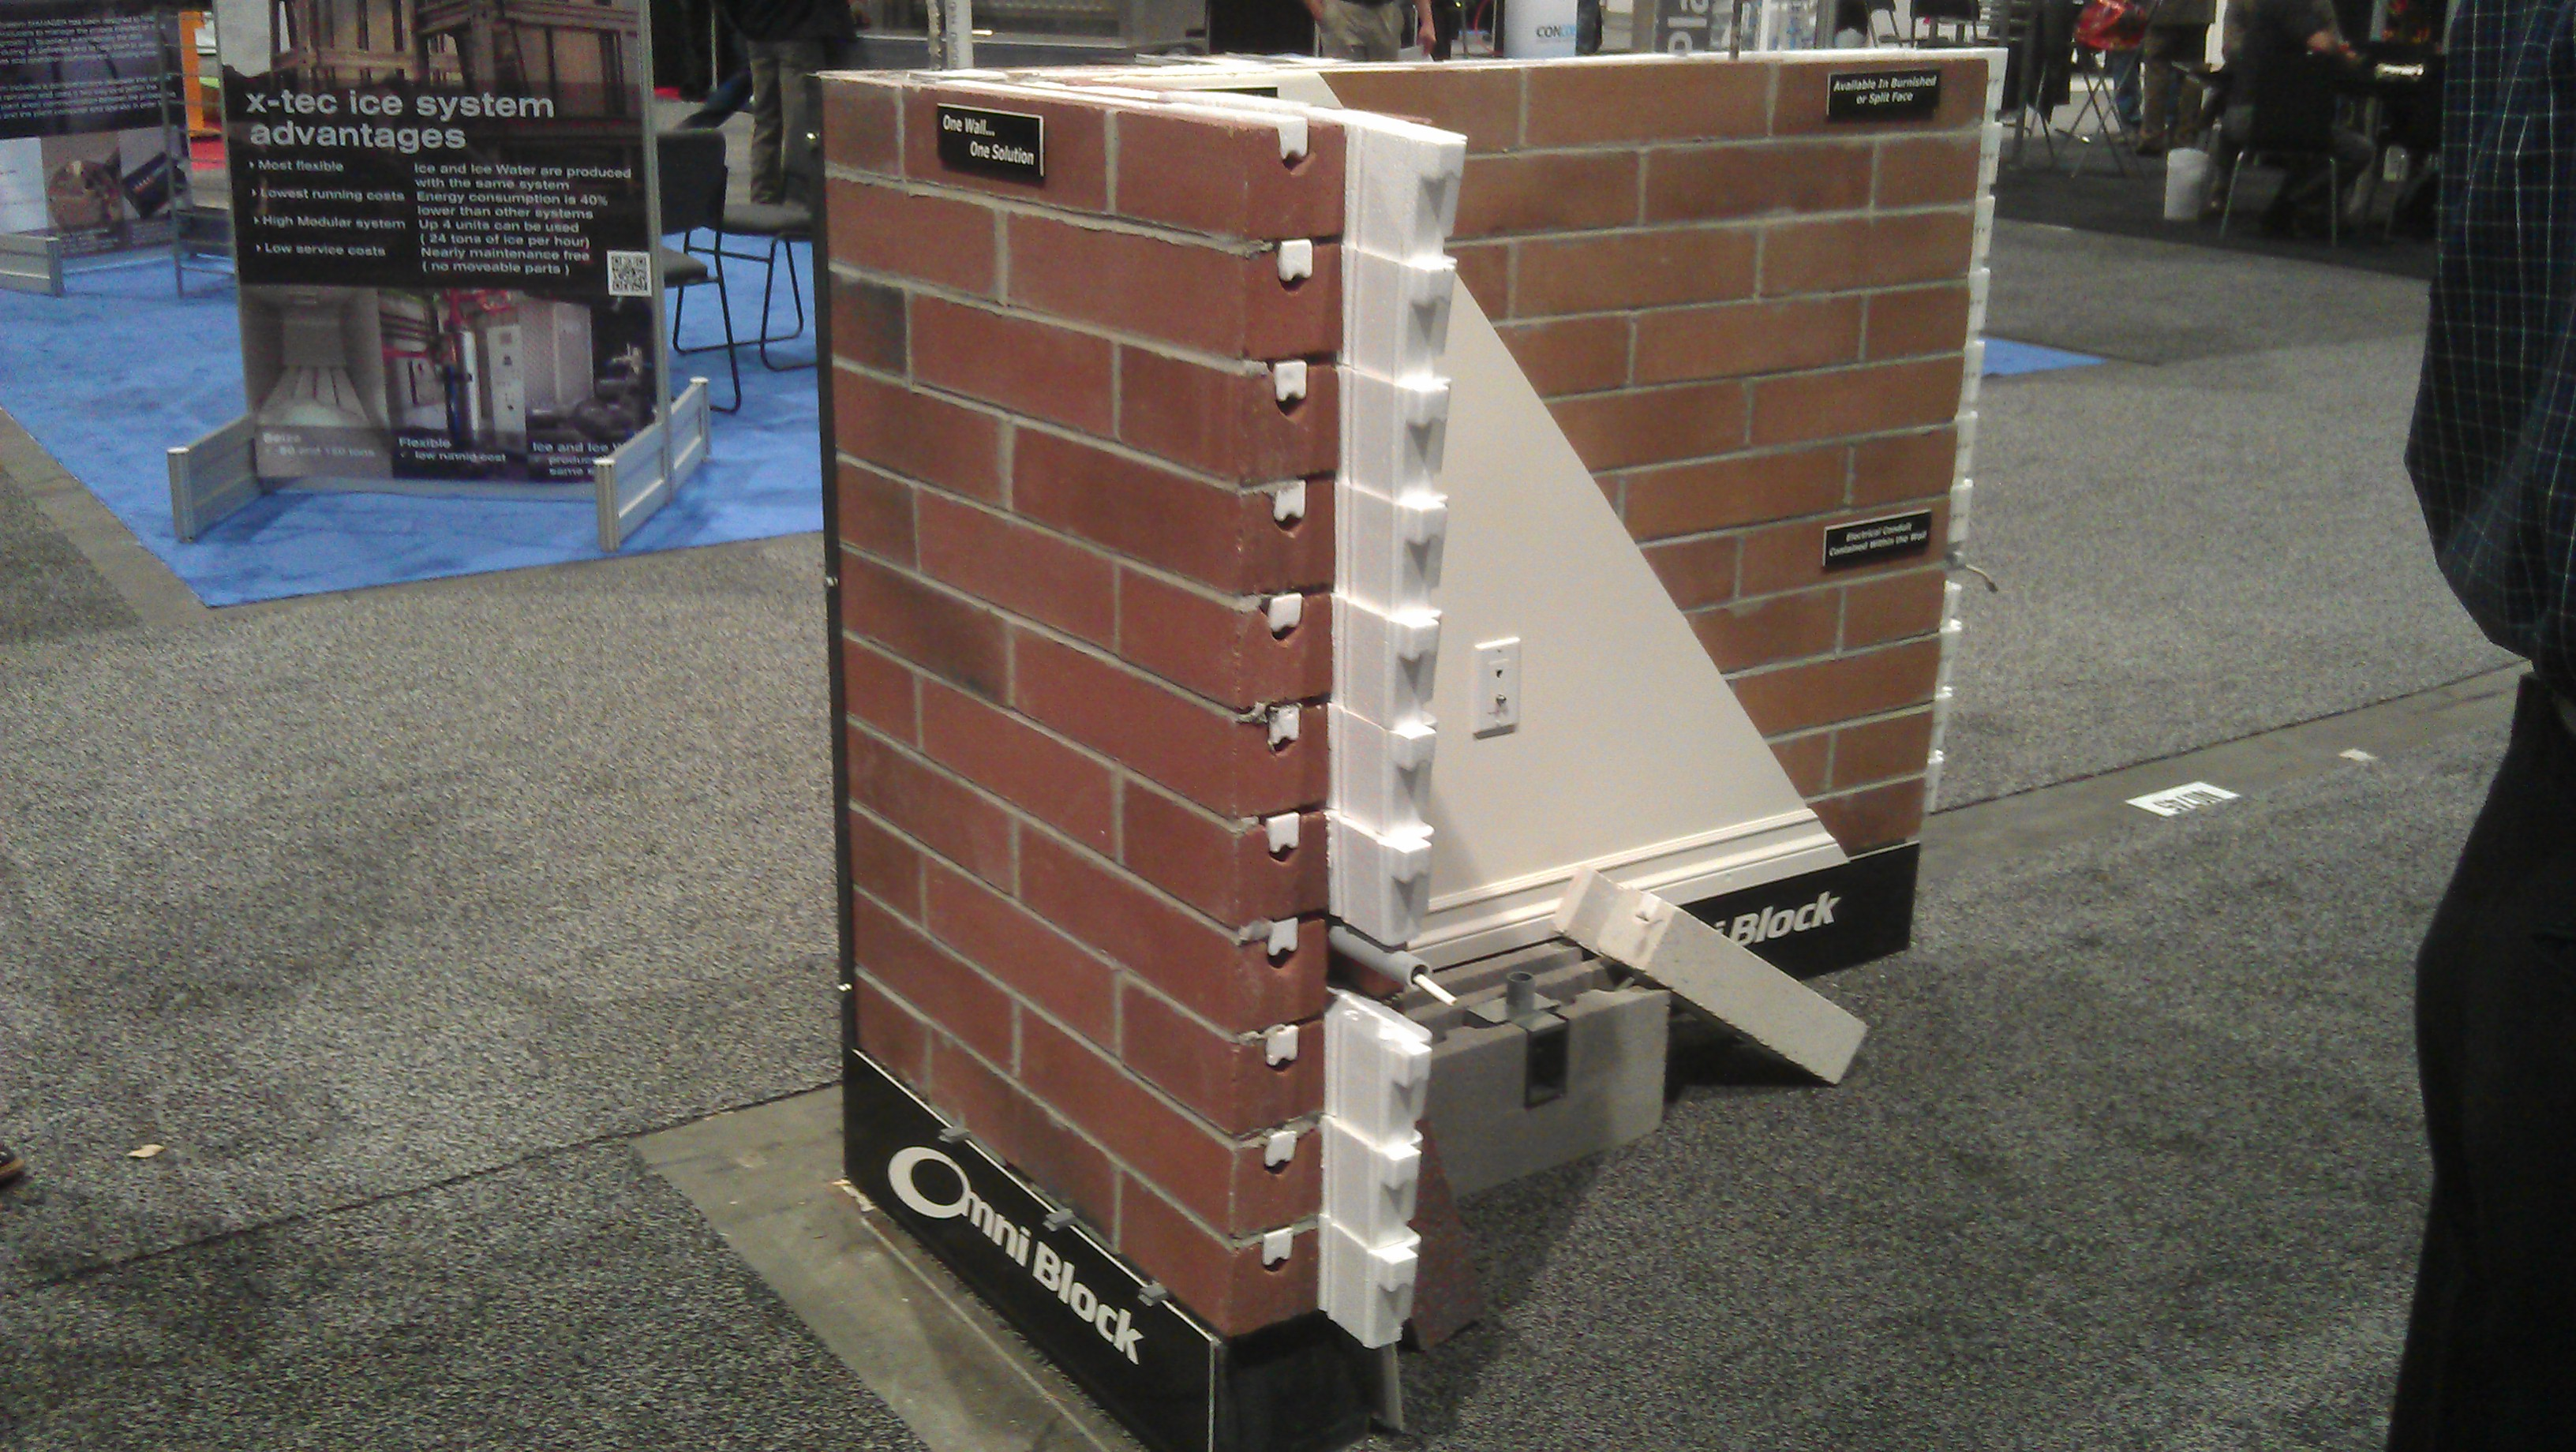 Exhibition Stand Builders Las Vegas : Exhibiting at the builders show in las vegas omniblock